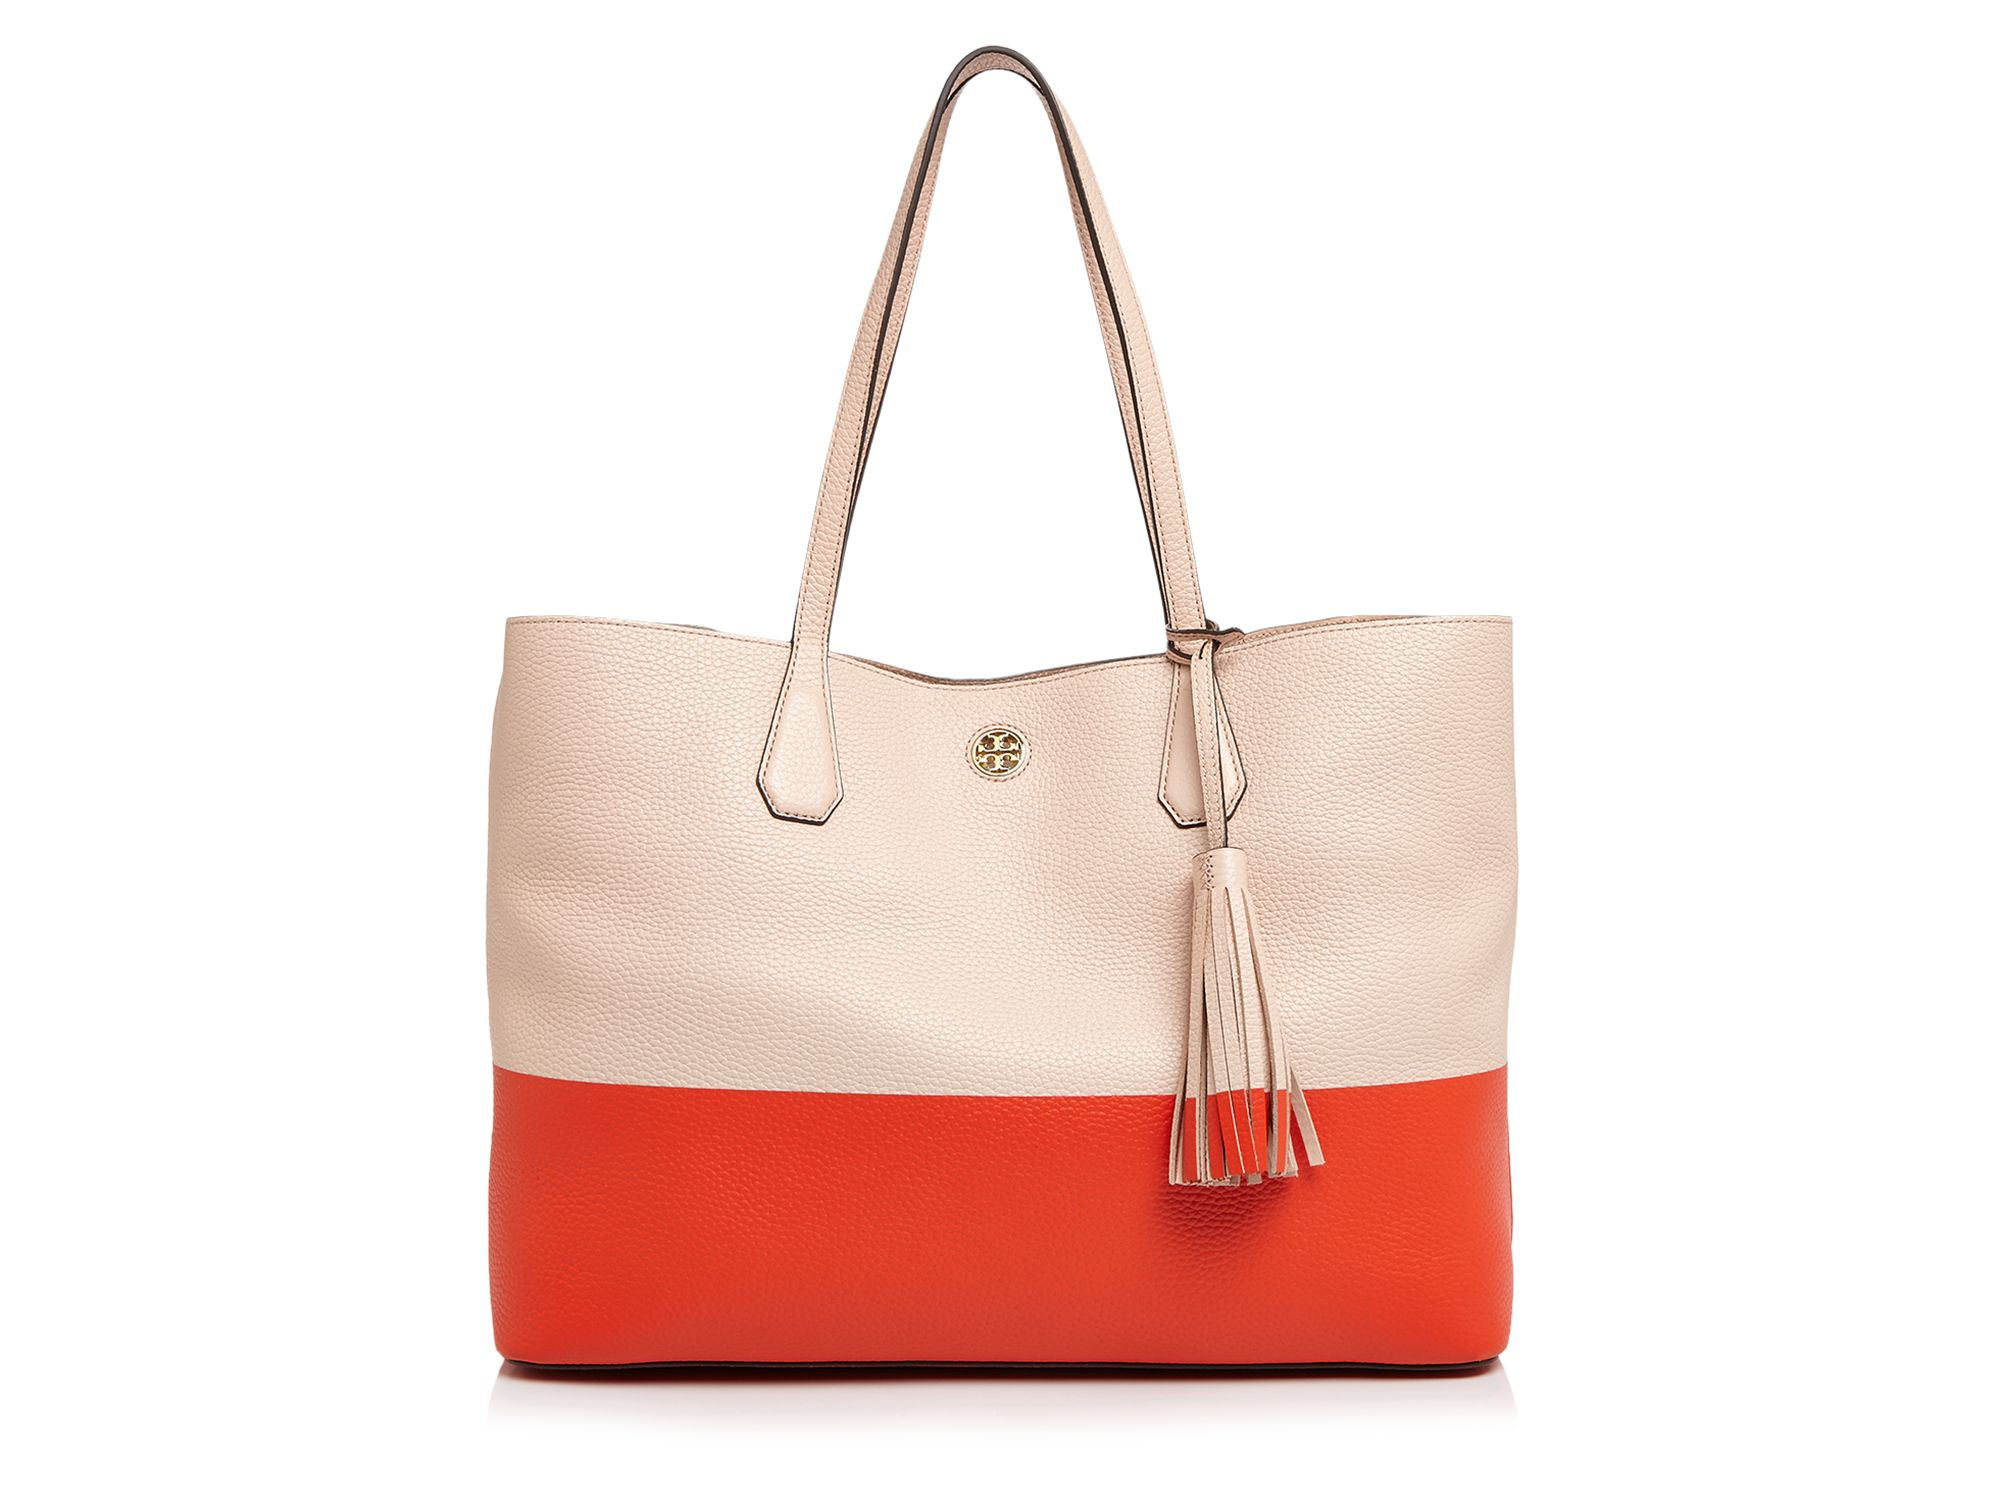 3d8f0462bed7 Lyst - Tory Burch Color Block Perry Tote - 100% Bloomingdale s ...